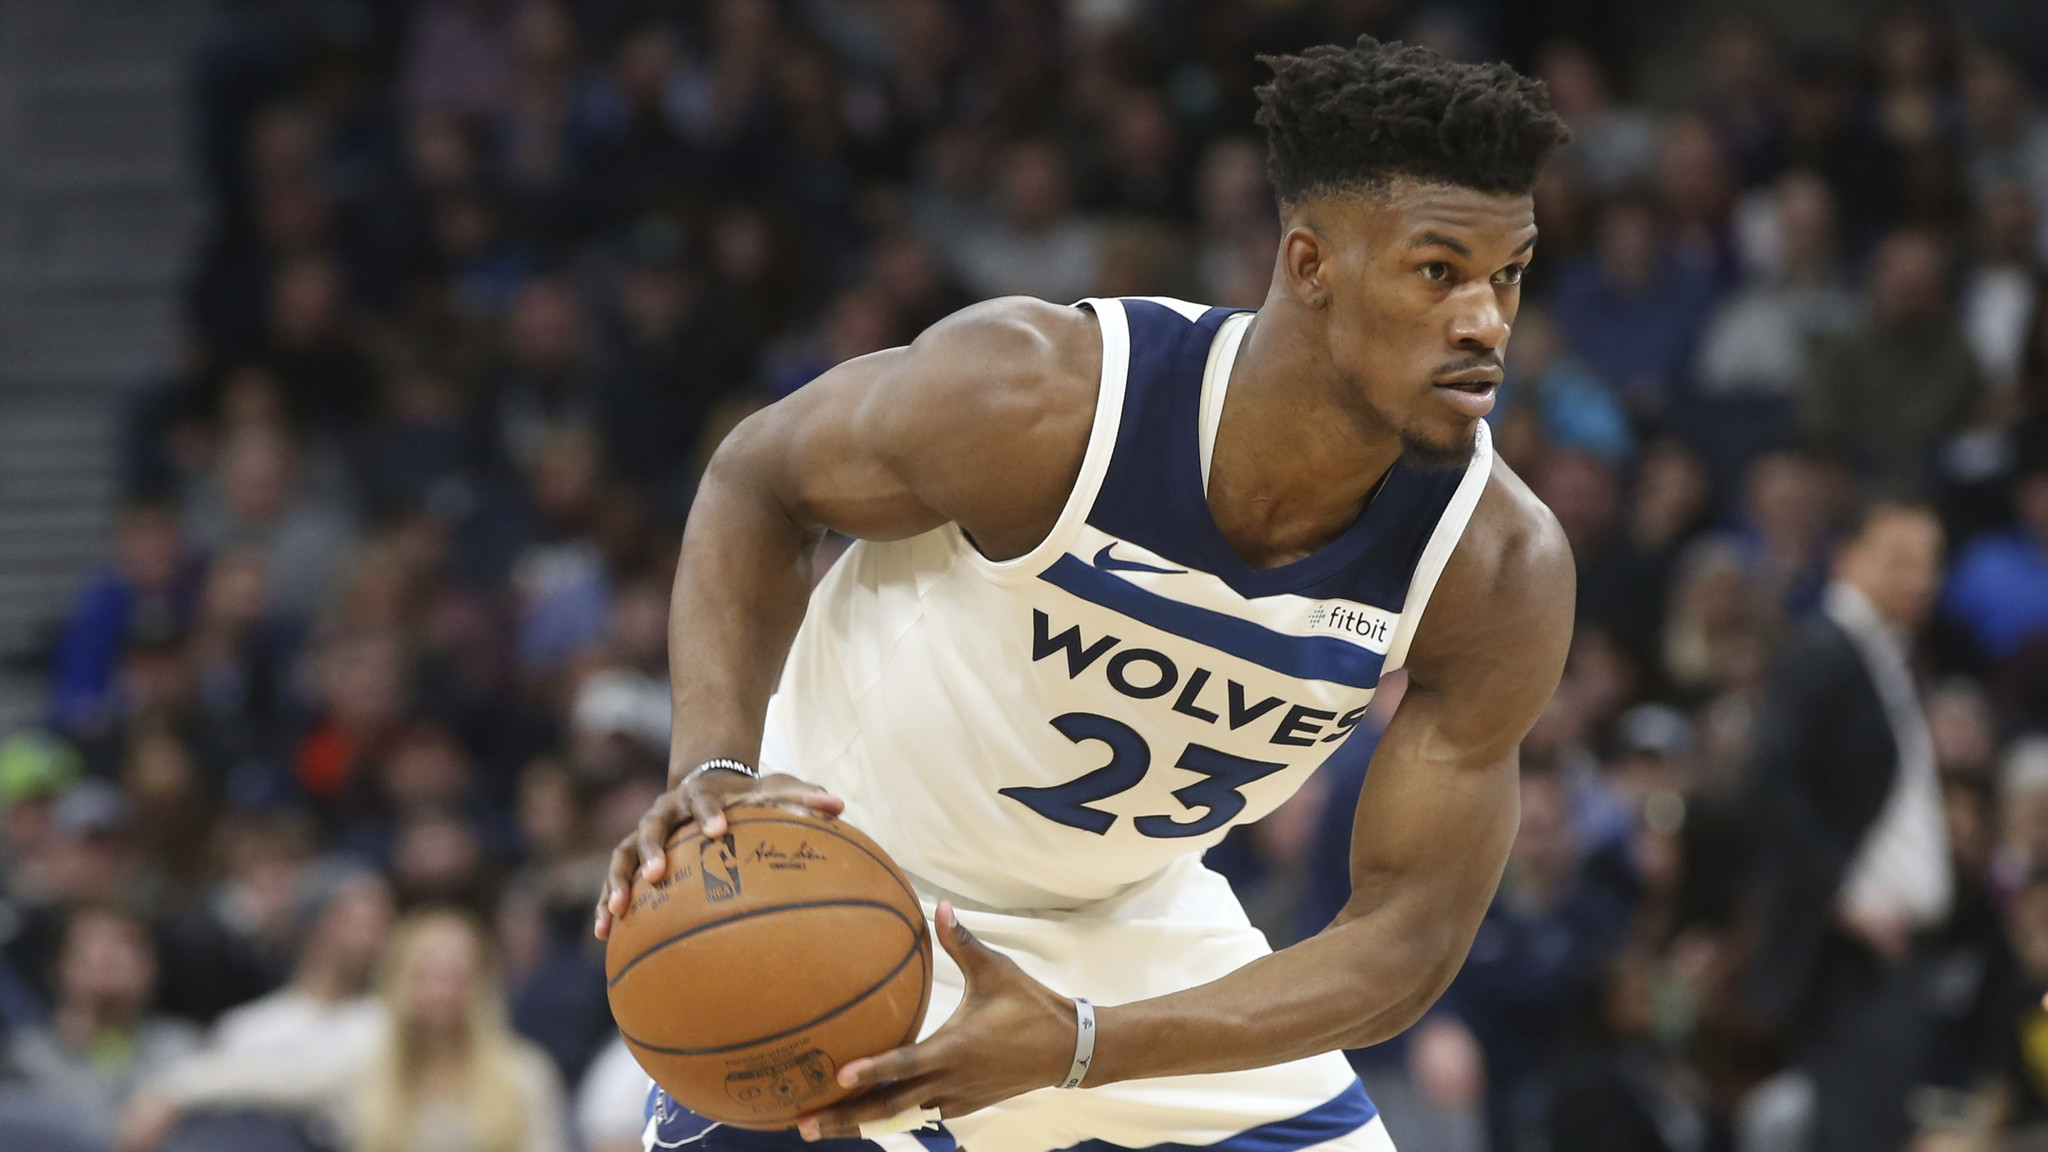 Can the Timberwolves survive without Jimmy Butler? To make the playoffs, they'll have to ...